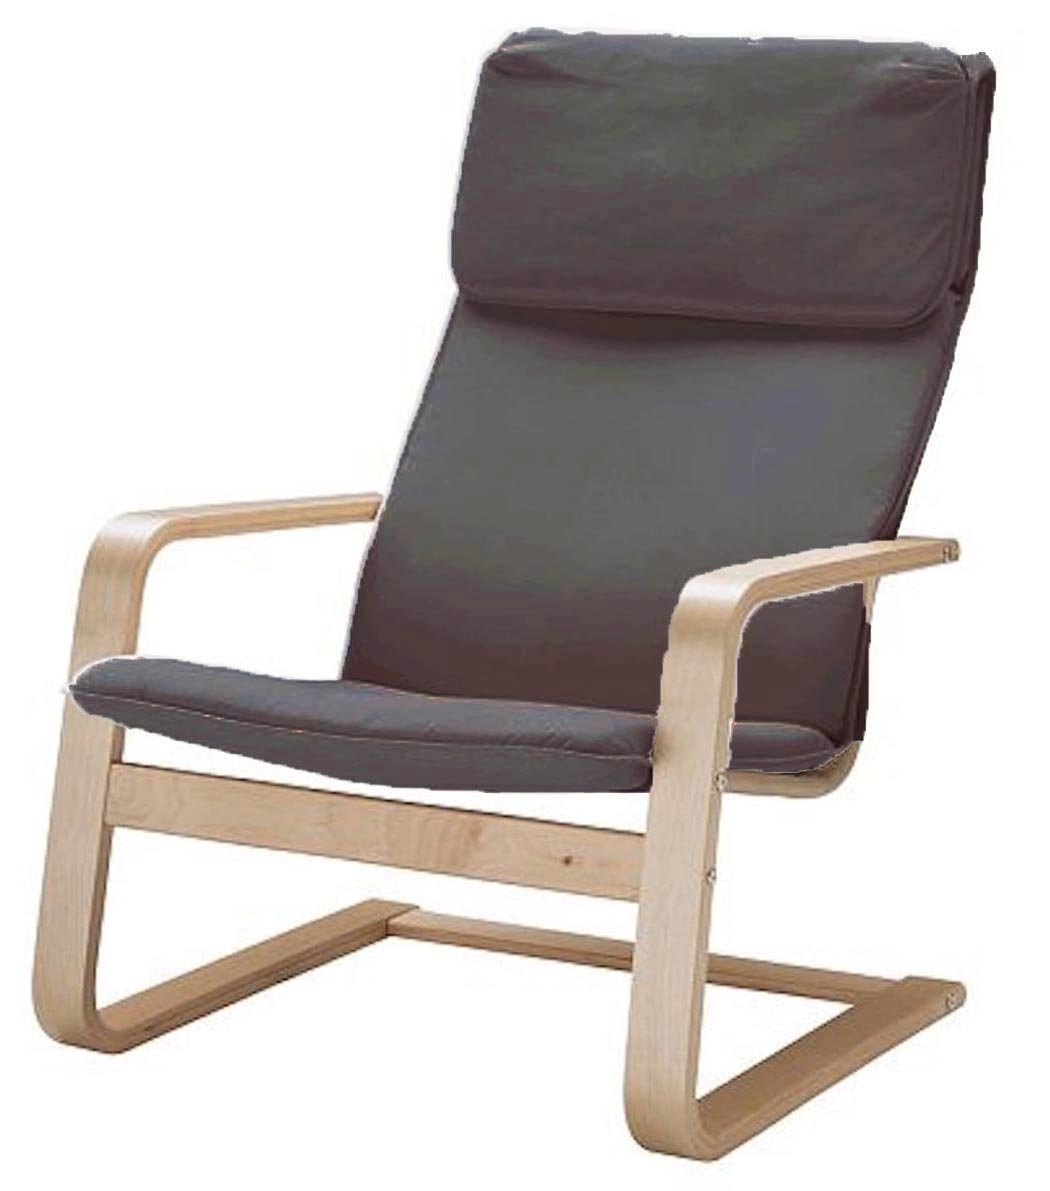 Buy Ikea Chair Covers Replacement Are Only For Ikea Pello